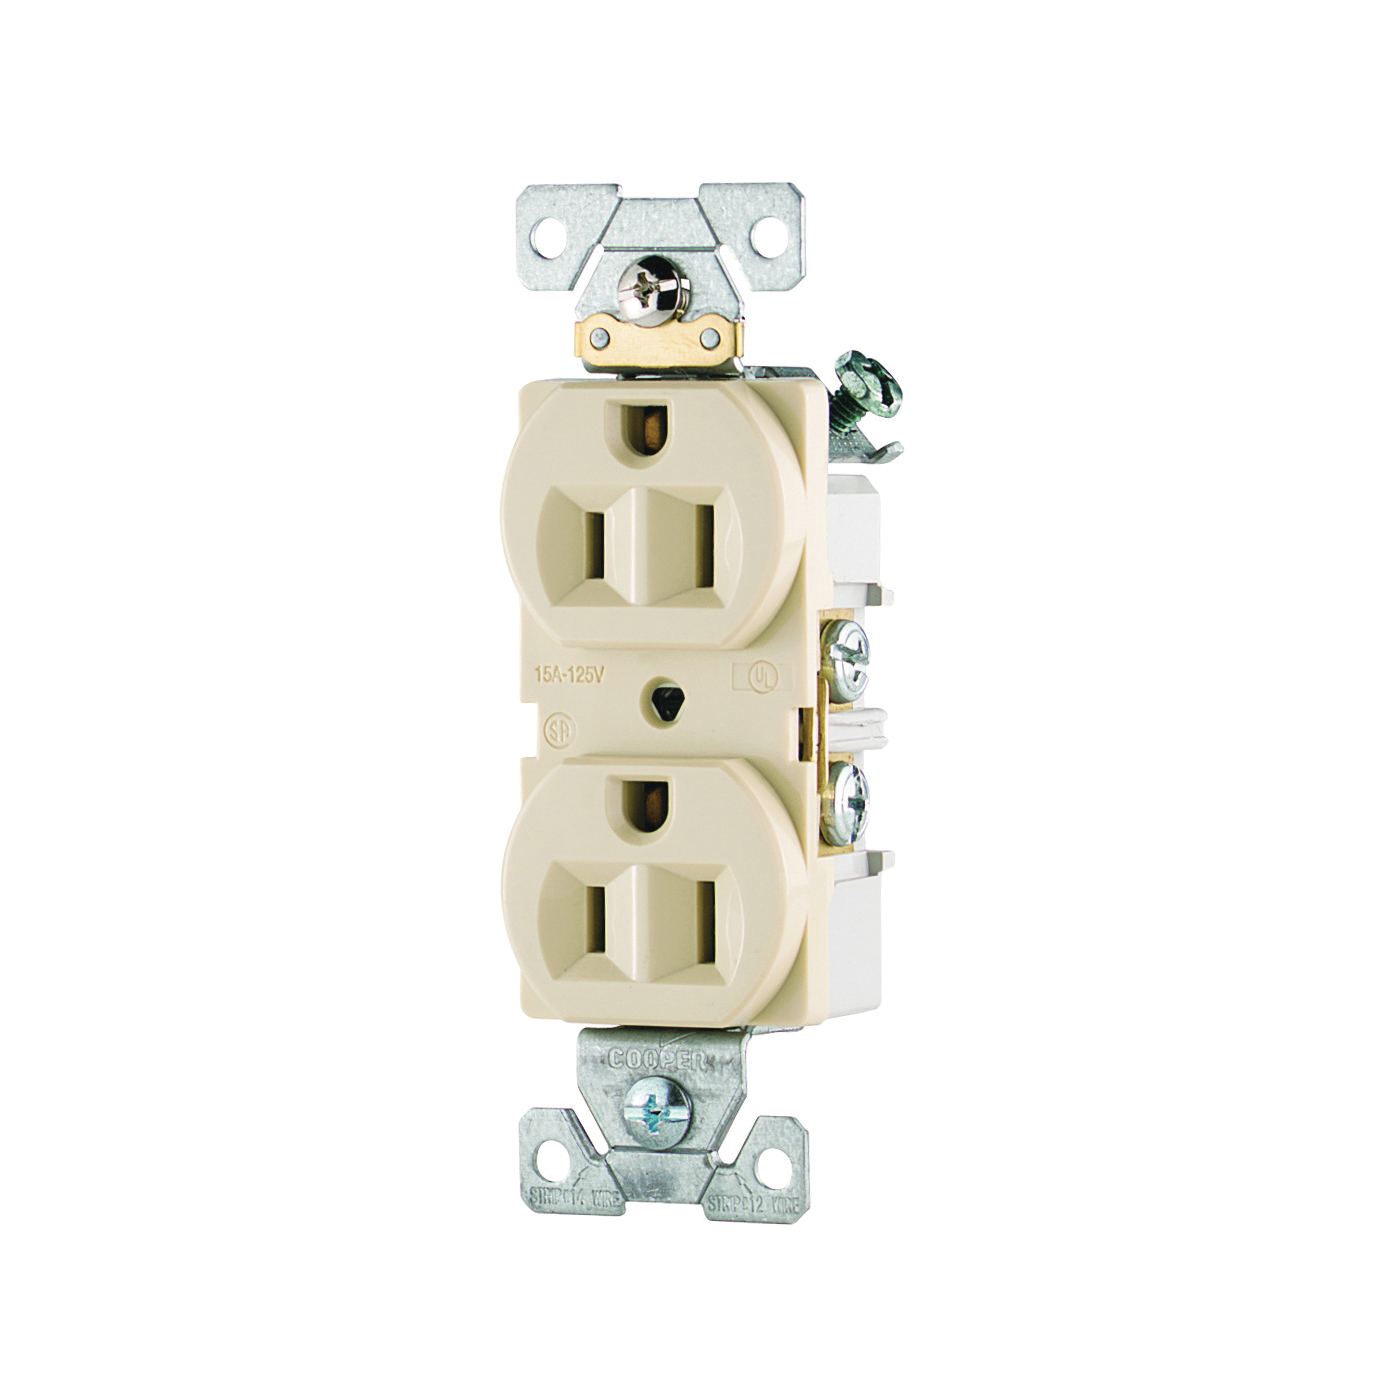 Picture of Eaton Wiring Devices CR15V Duplex Receptacle, 2-Pole, 15 A, 125 V, Side Wiring, NEMA: 5-15R, Ivory